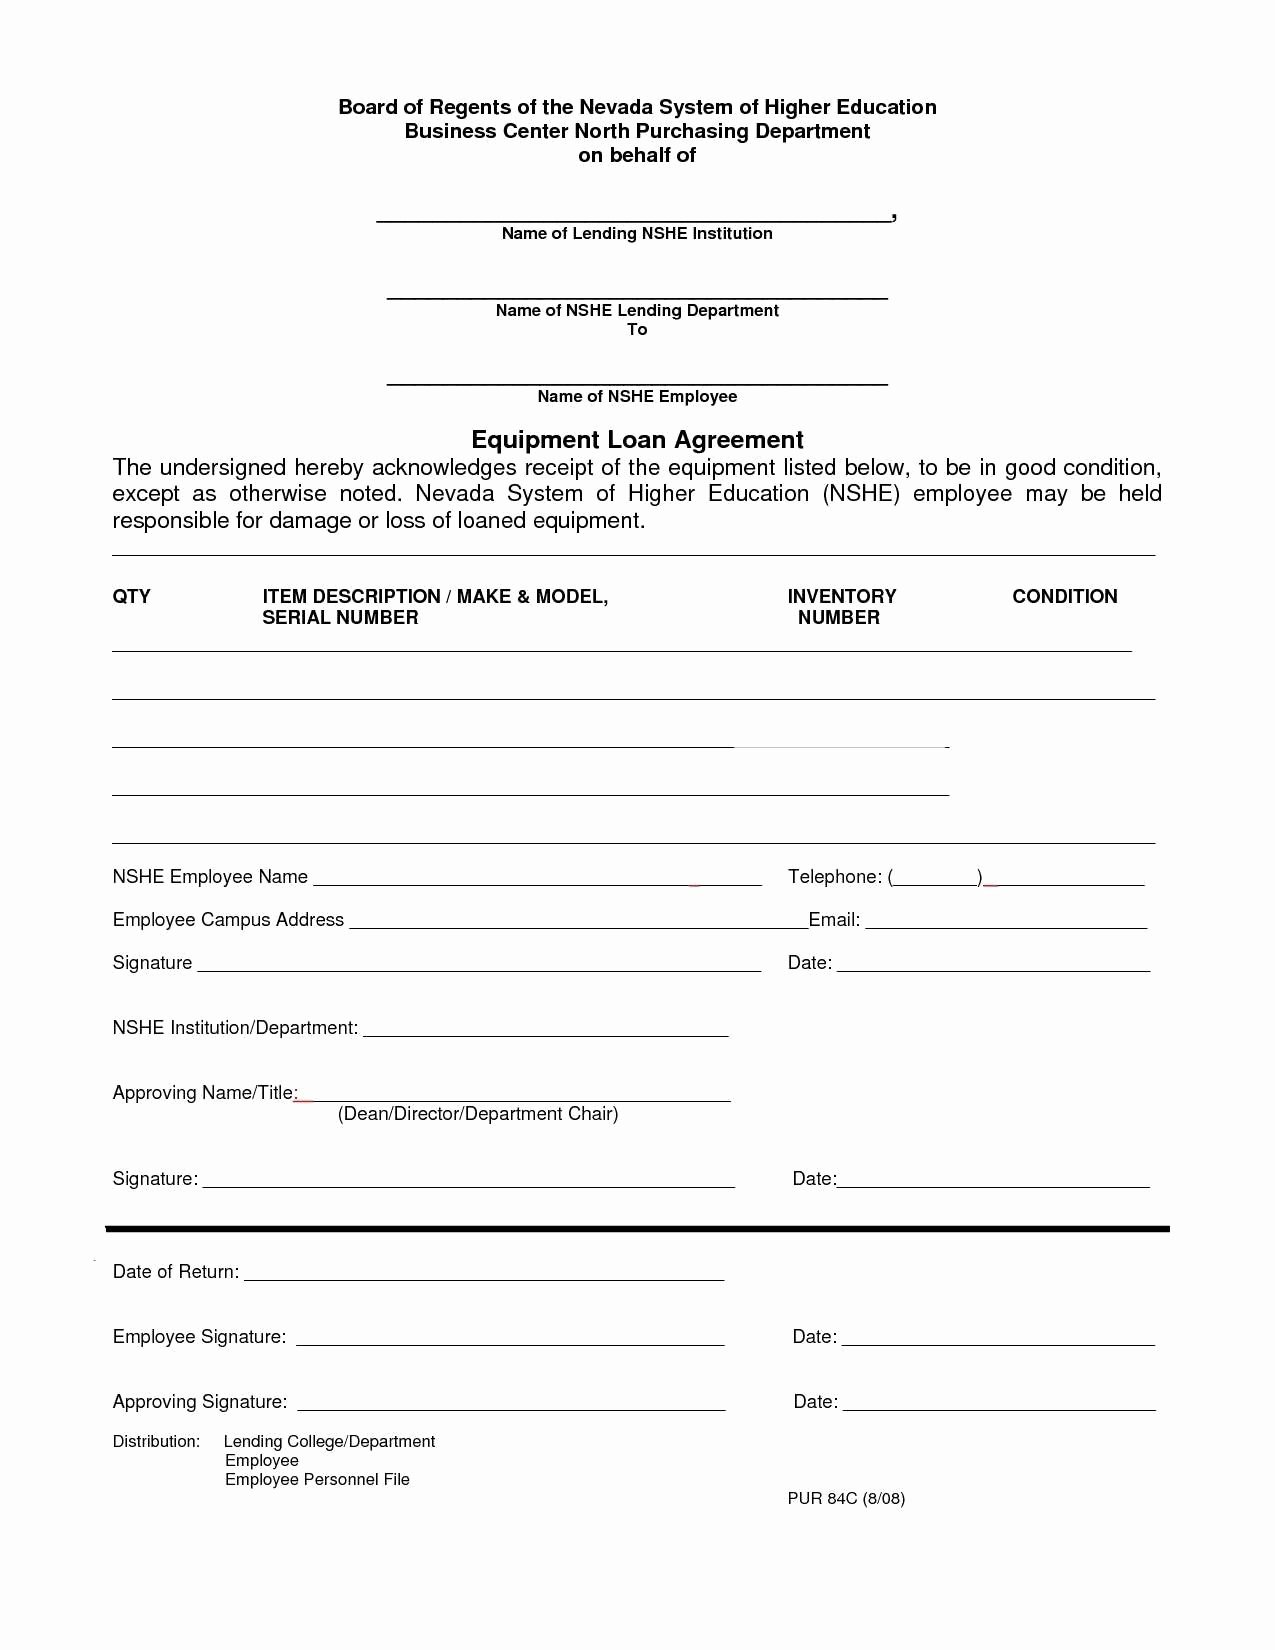 Equipment Loan Agreement Template Elegant Equipment Finance Agreement Template Ideal Sample